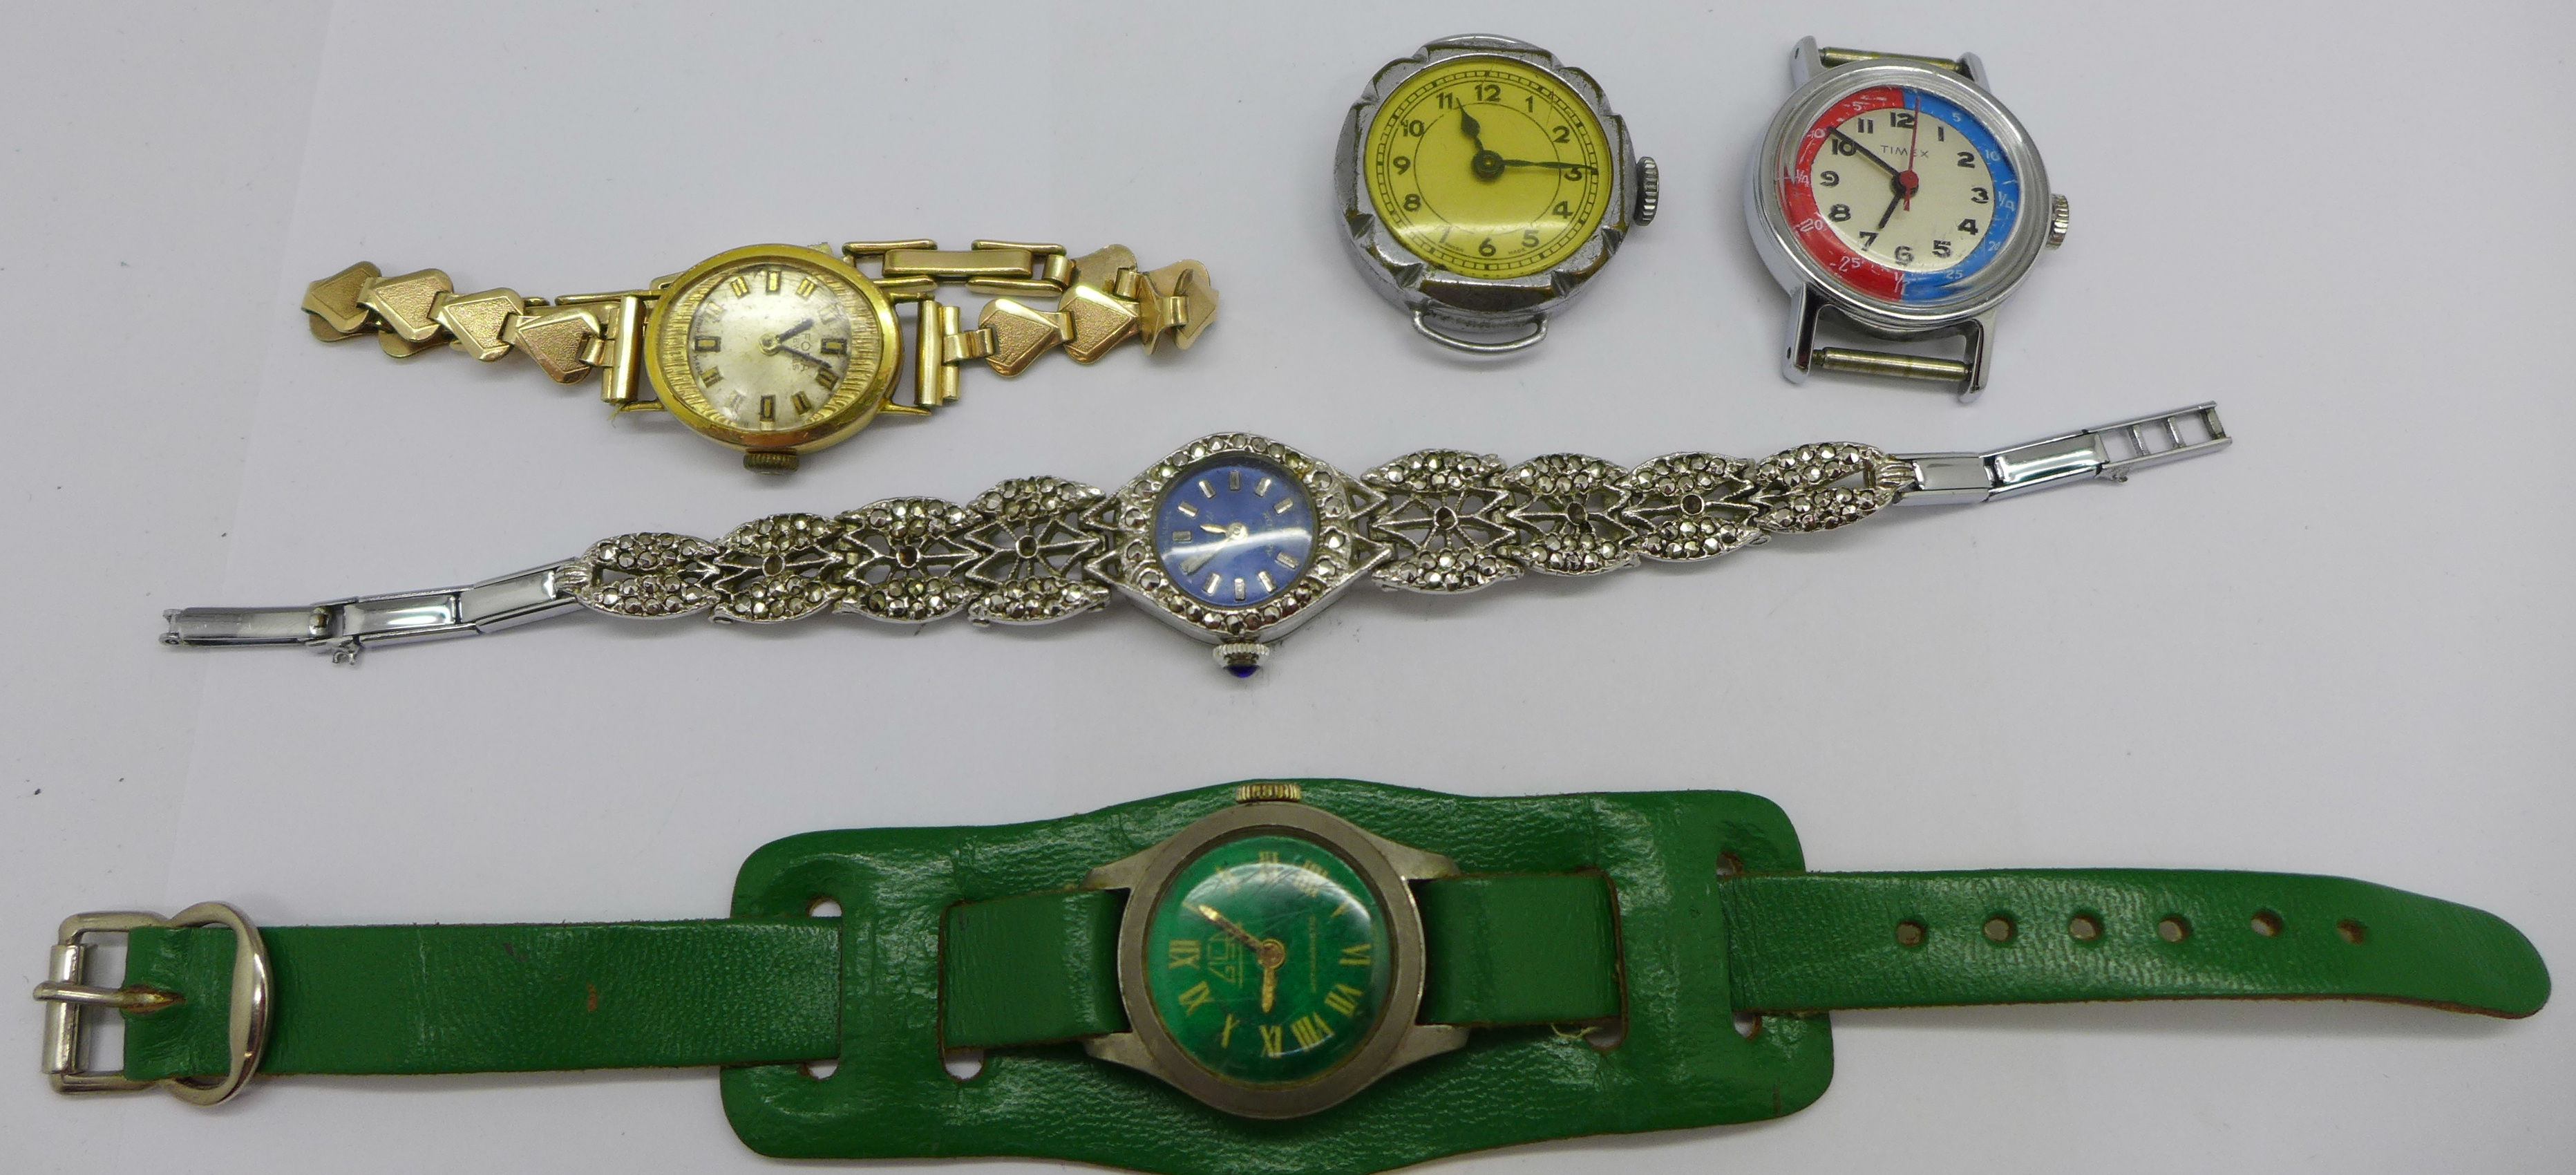 Six lady's wristwatches - Image 2 of 3